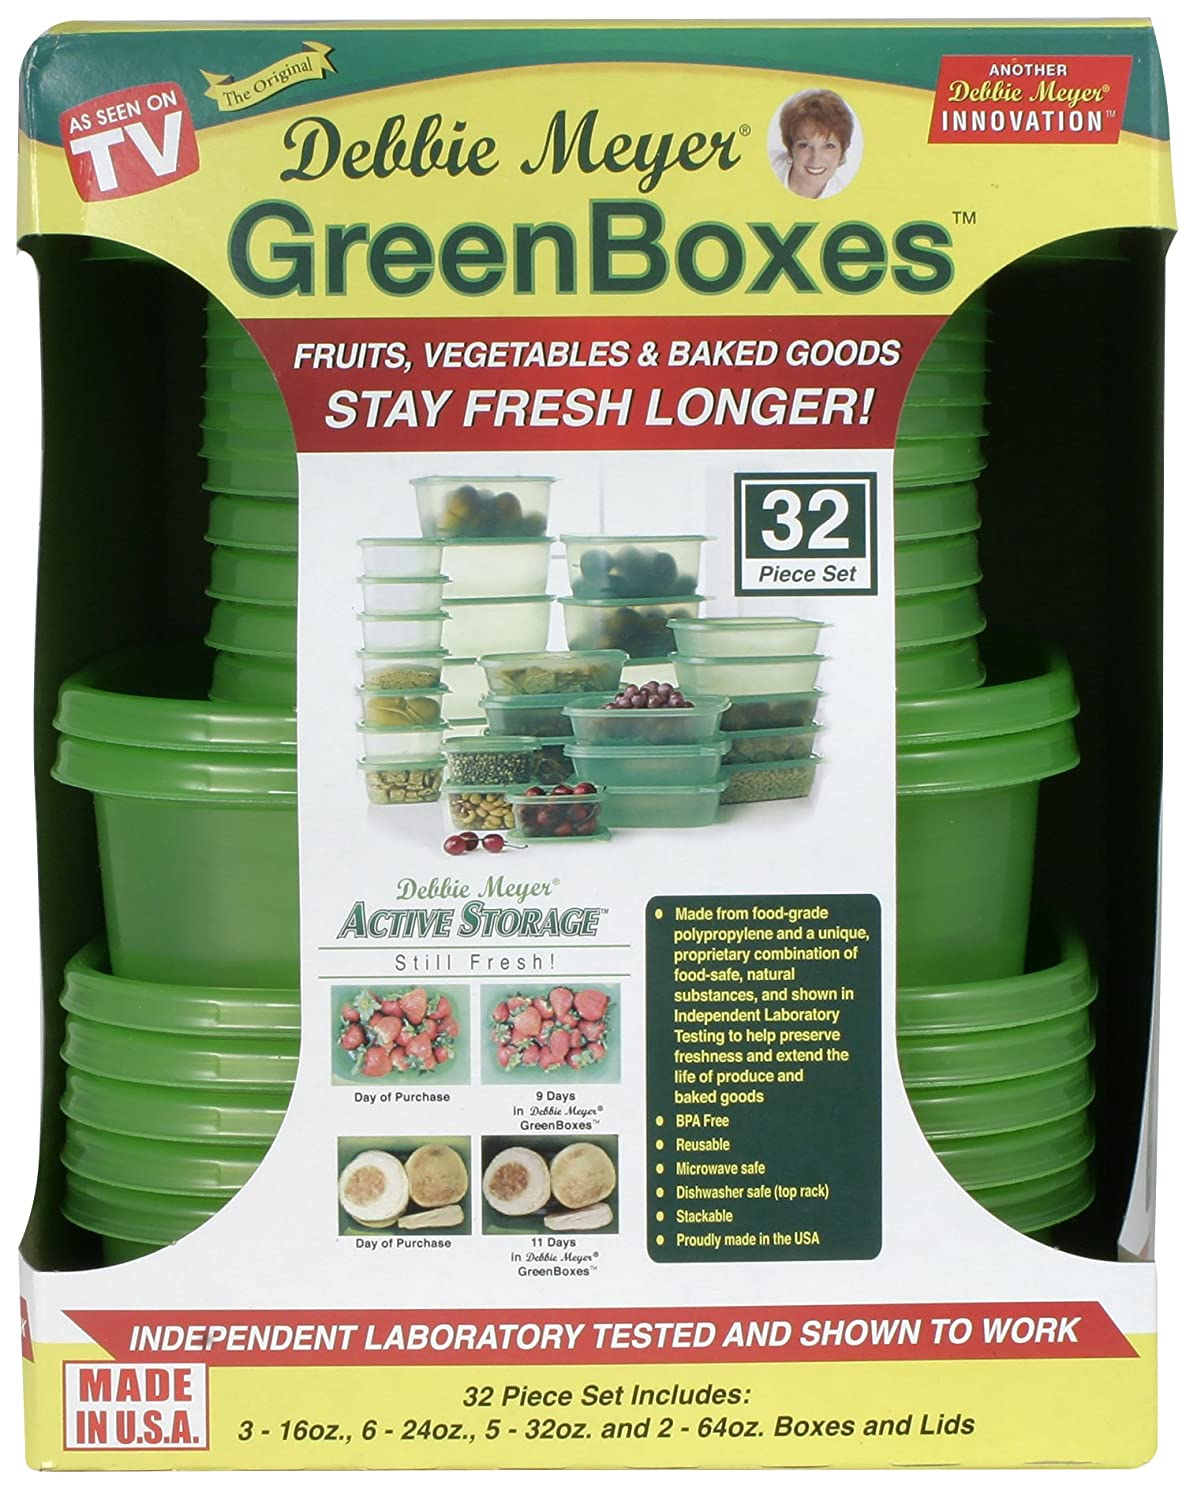 Amazon.com Debbie Meyer 32 Piece UltraLite GreenBoxes - Green Kitchen u0026 Dining  sc 1 st  Amazon.com & Amazon.com: Debbie Meyer 32 Piece UltraLite GreenBoxes - Green ...